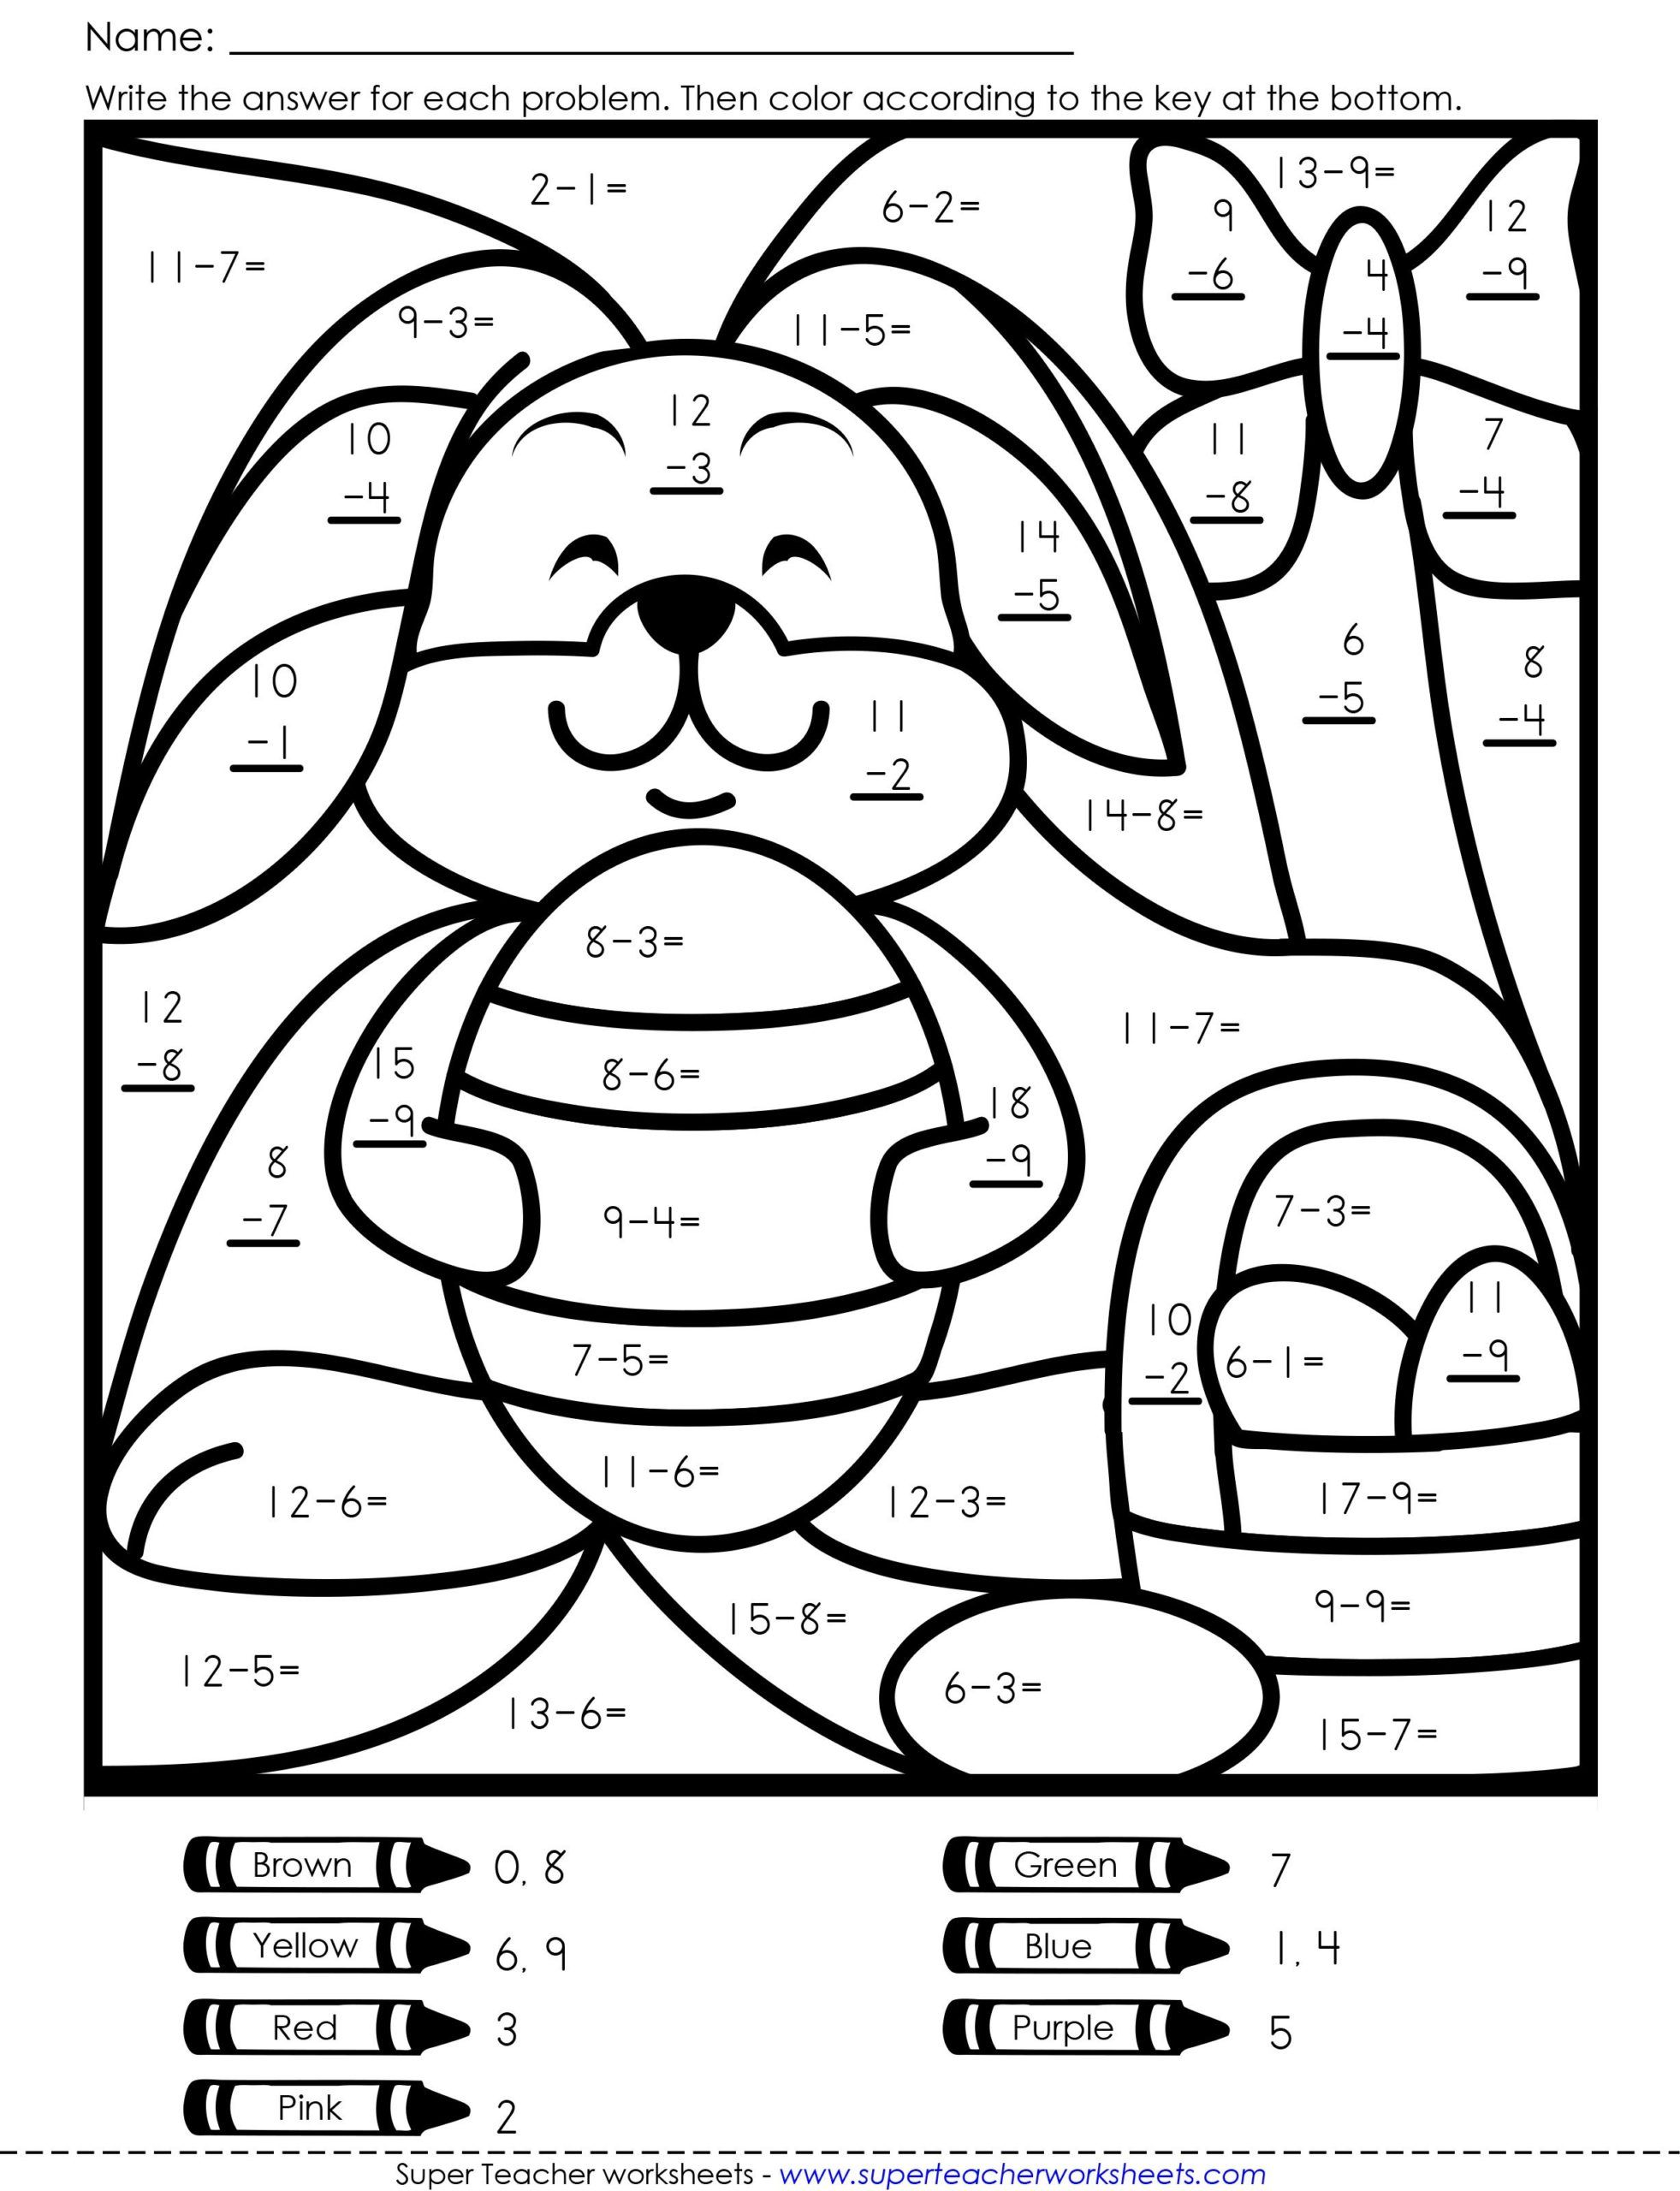 hight resolution of Coloring Addition Worksheets For Grade 1 - colouring mermaid   Easter math